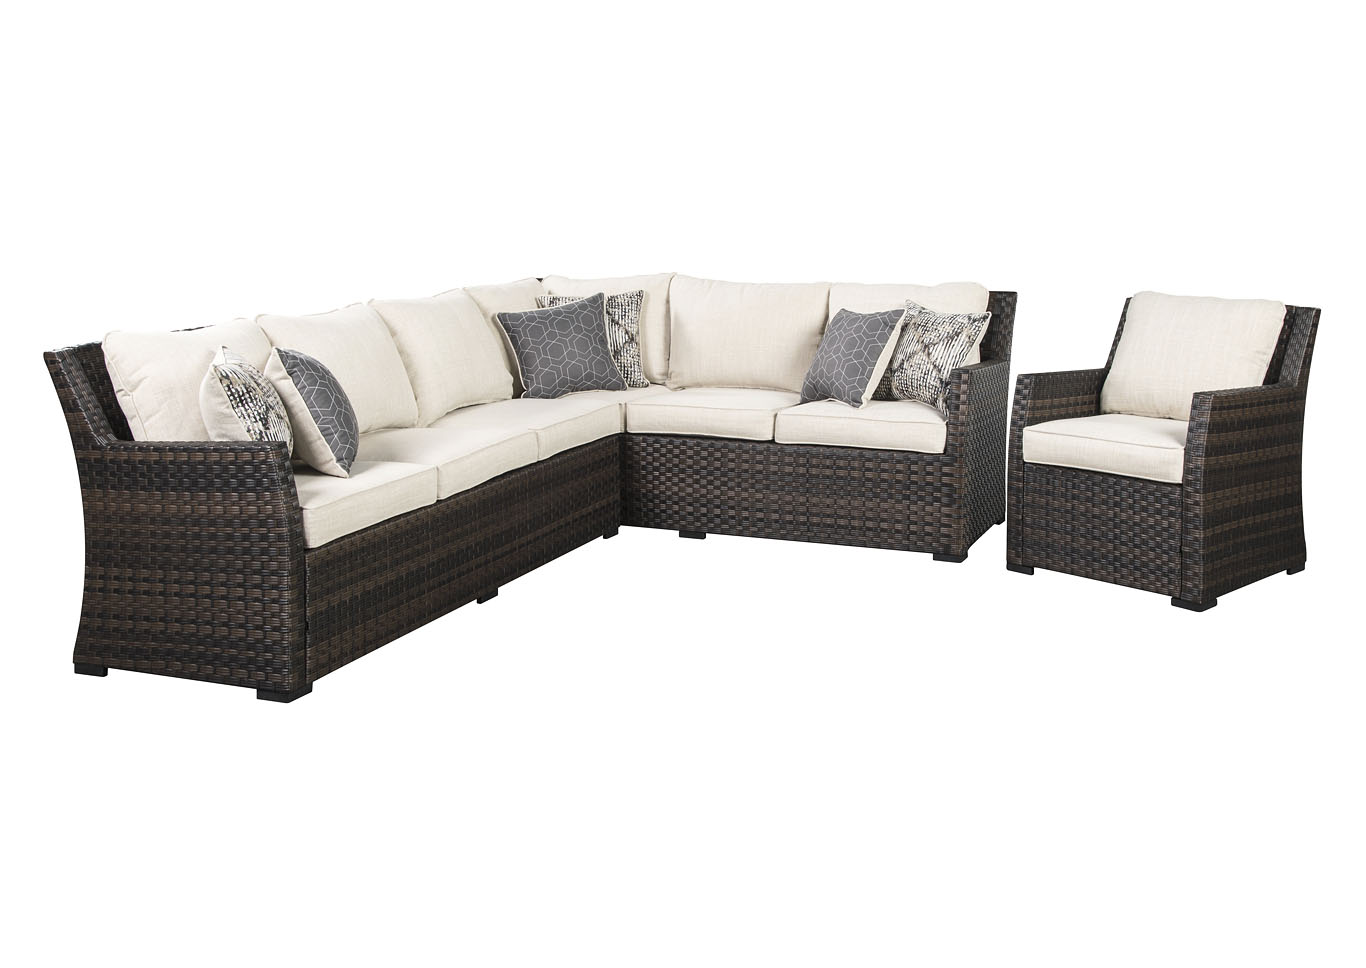 Easy Isle Dark Brown/Beige Sectional and Lounge Chair w/Cushion,Outdoor By Ashley